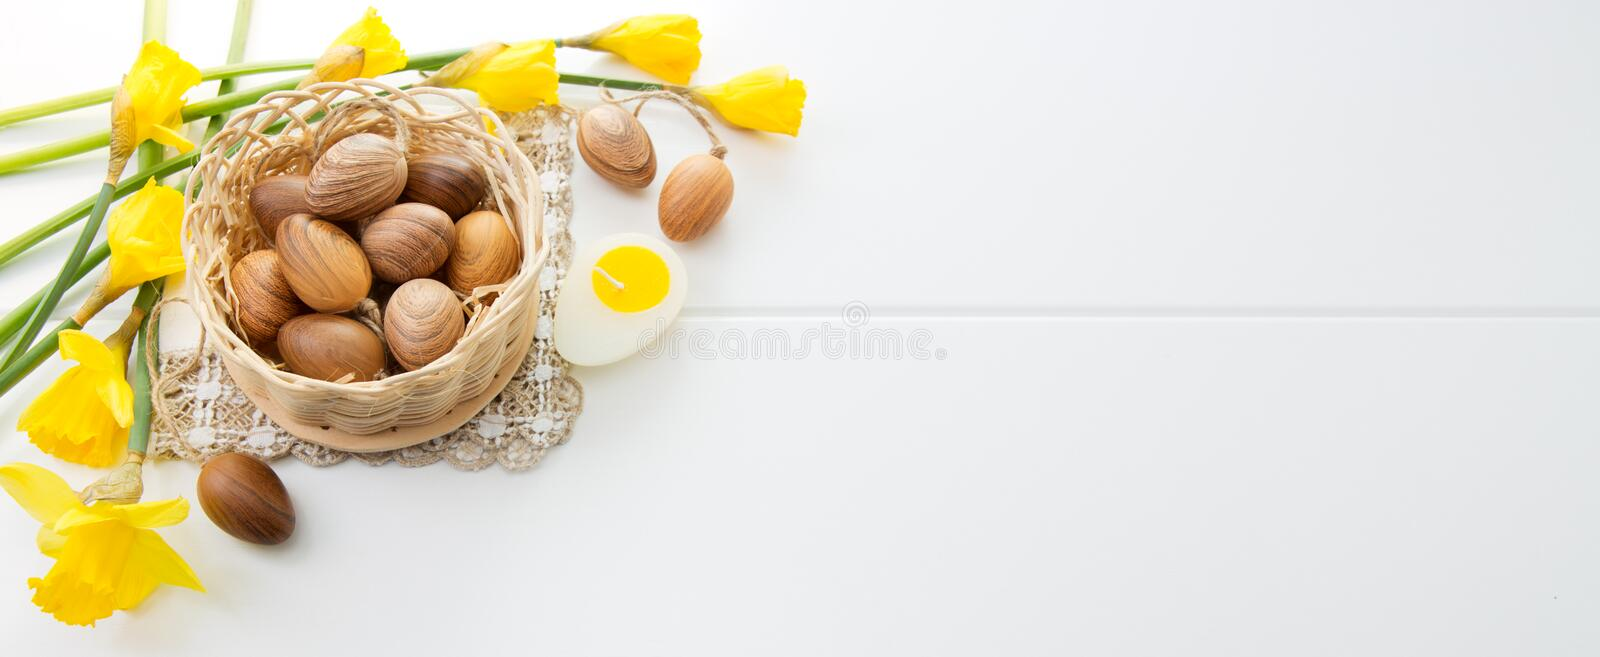 Brown easter eggs in basket and yellow daffodils. royalty free stock image